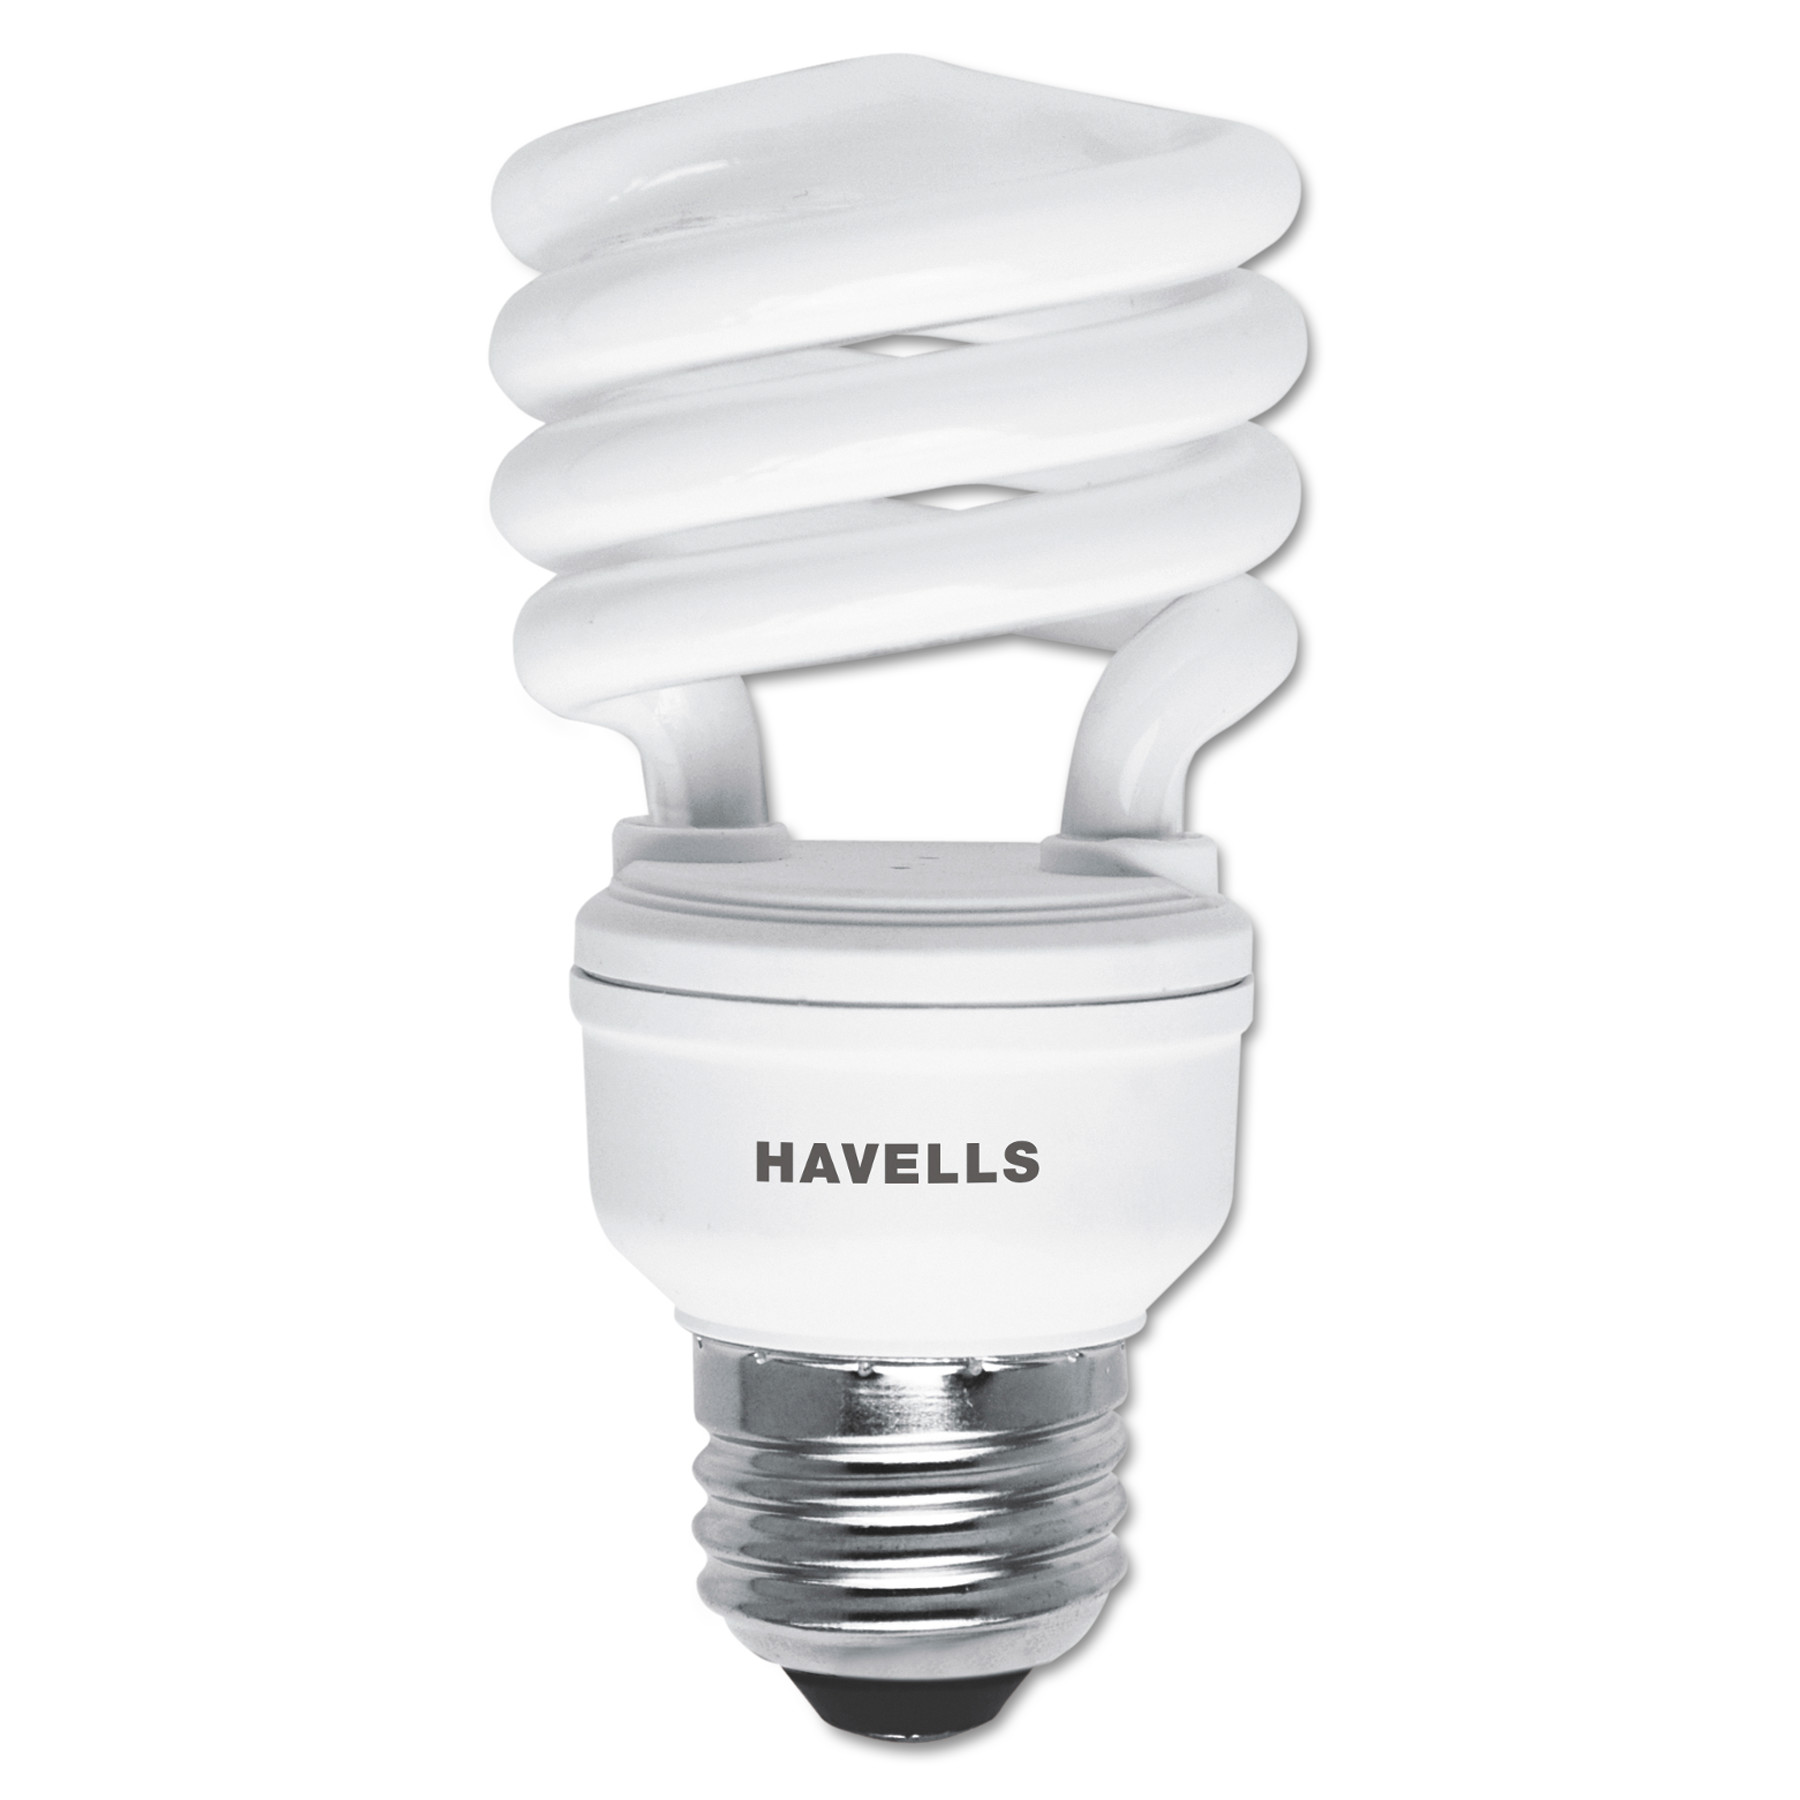 Havells Spiral, Soft White Energy Saver Compact Fluorescent Bulb, 13 Watts, 4/Pack